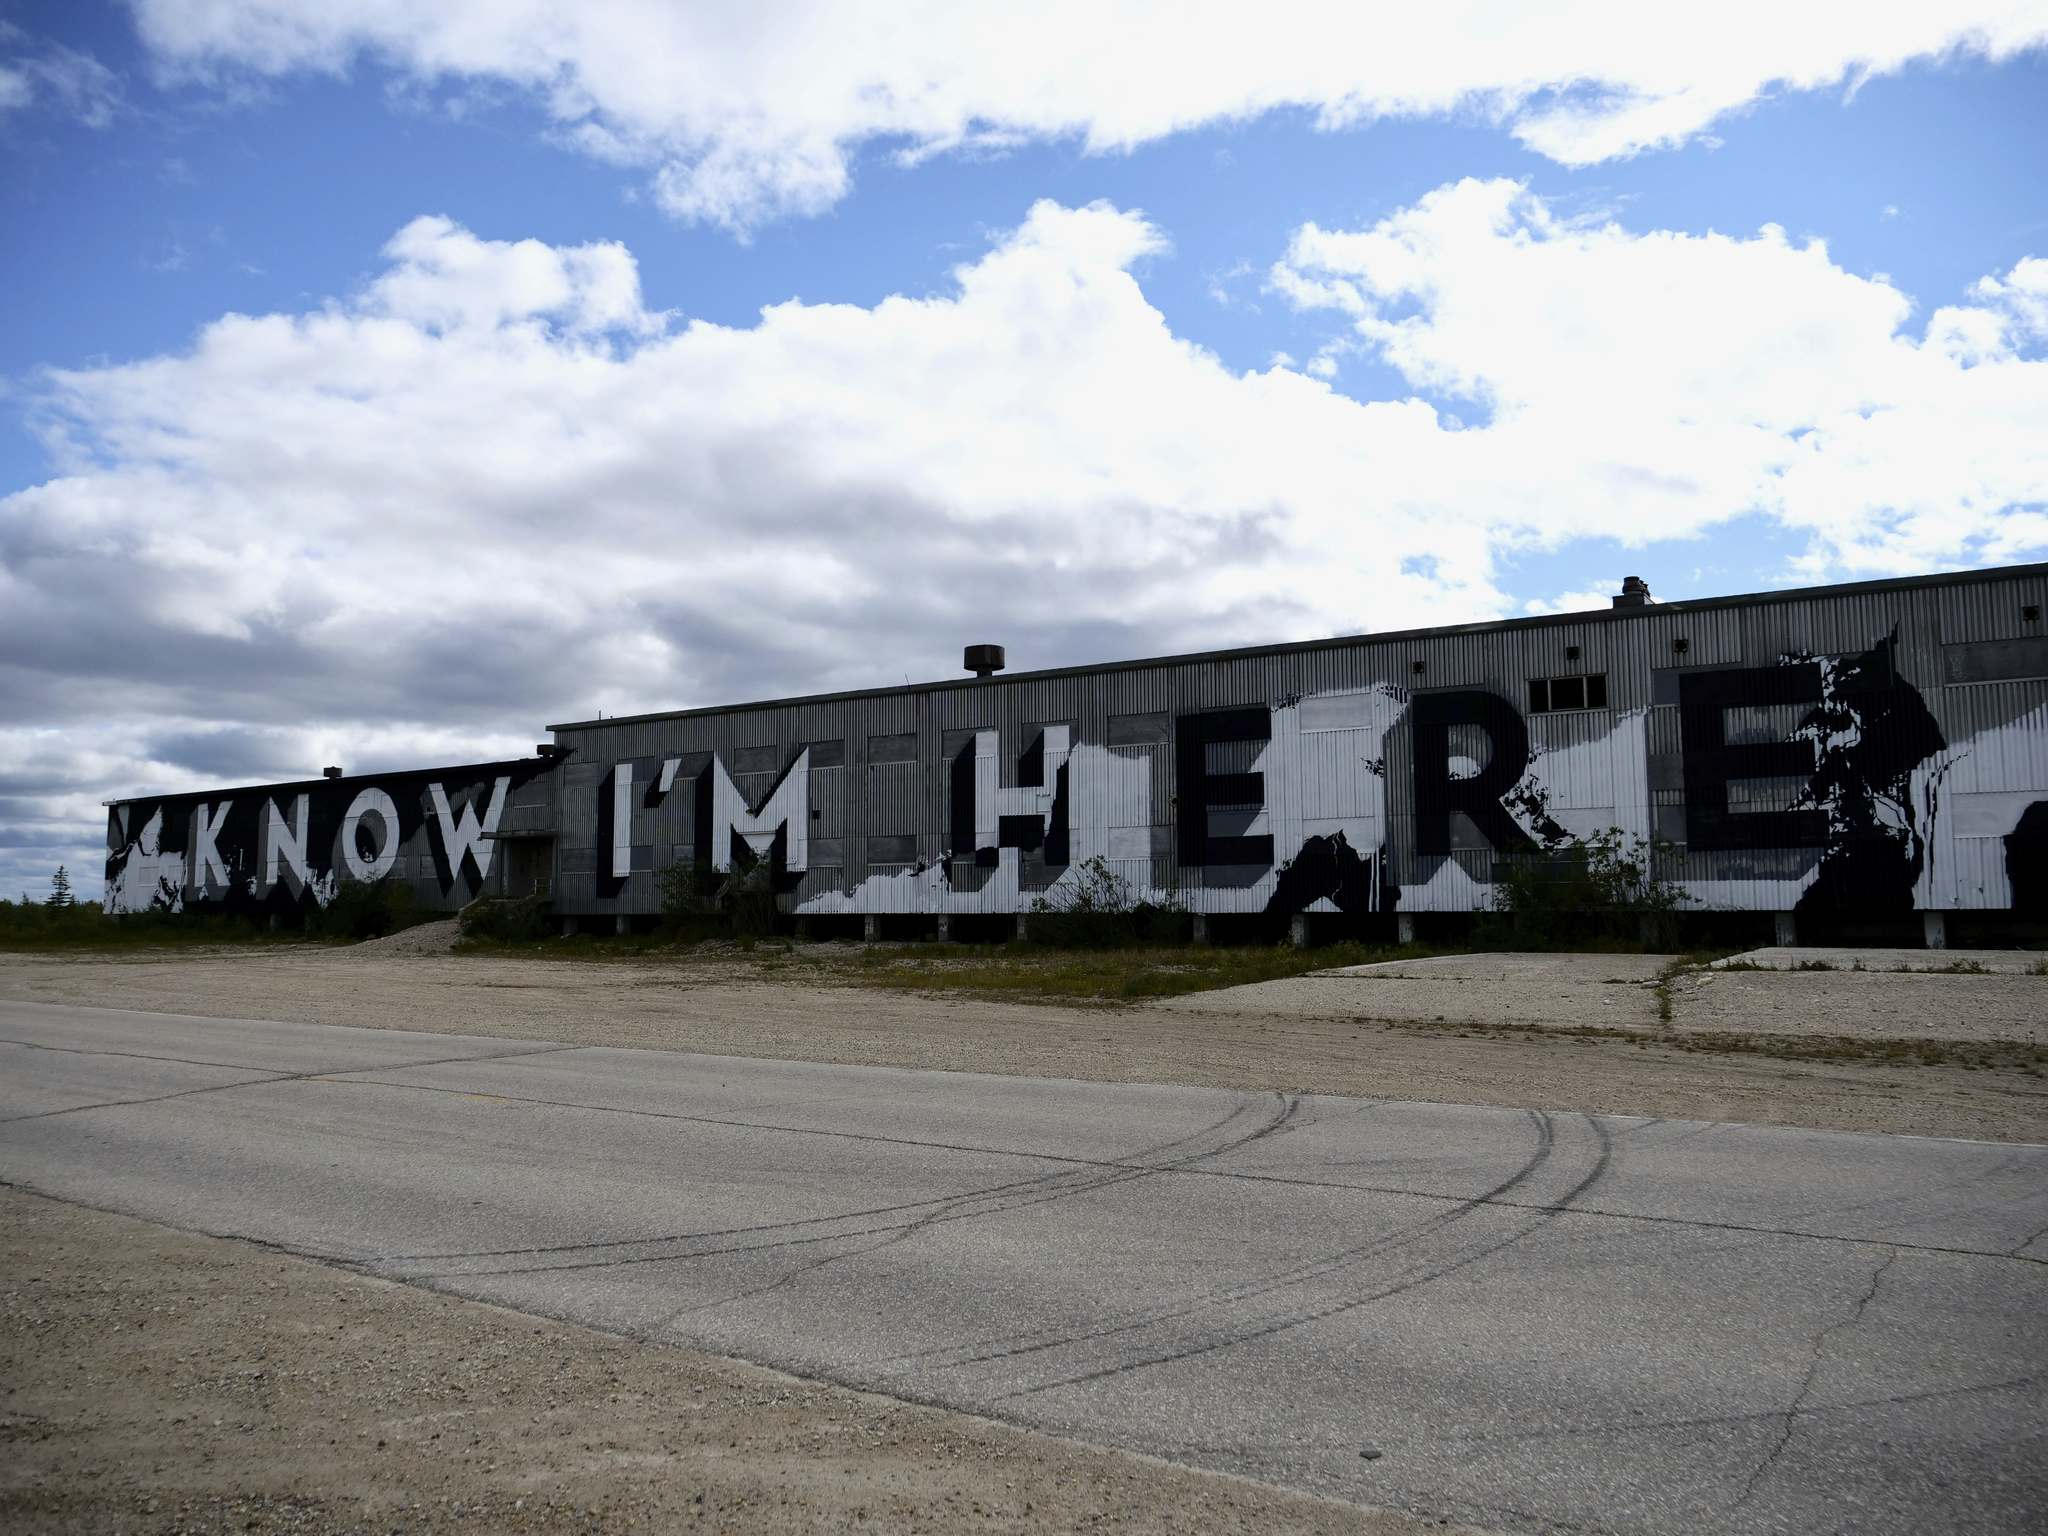 SARAH LAWRYNUIK / WINNIPEG FREE PRESS</p><p>The 'Know I'm Here' mural takes on greater urgency as climate change's impact is felt in the North.</p>